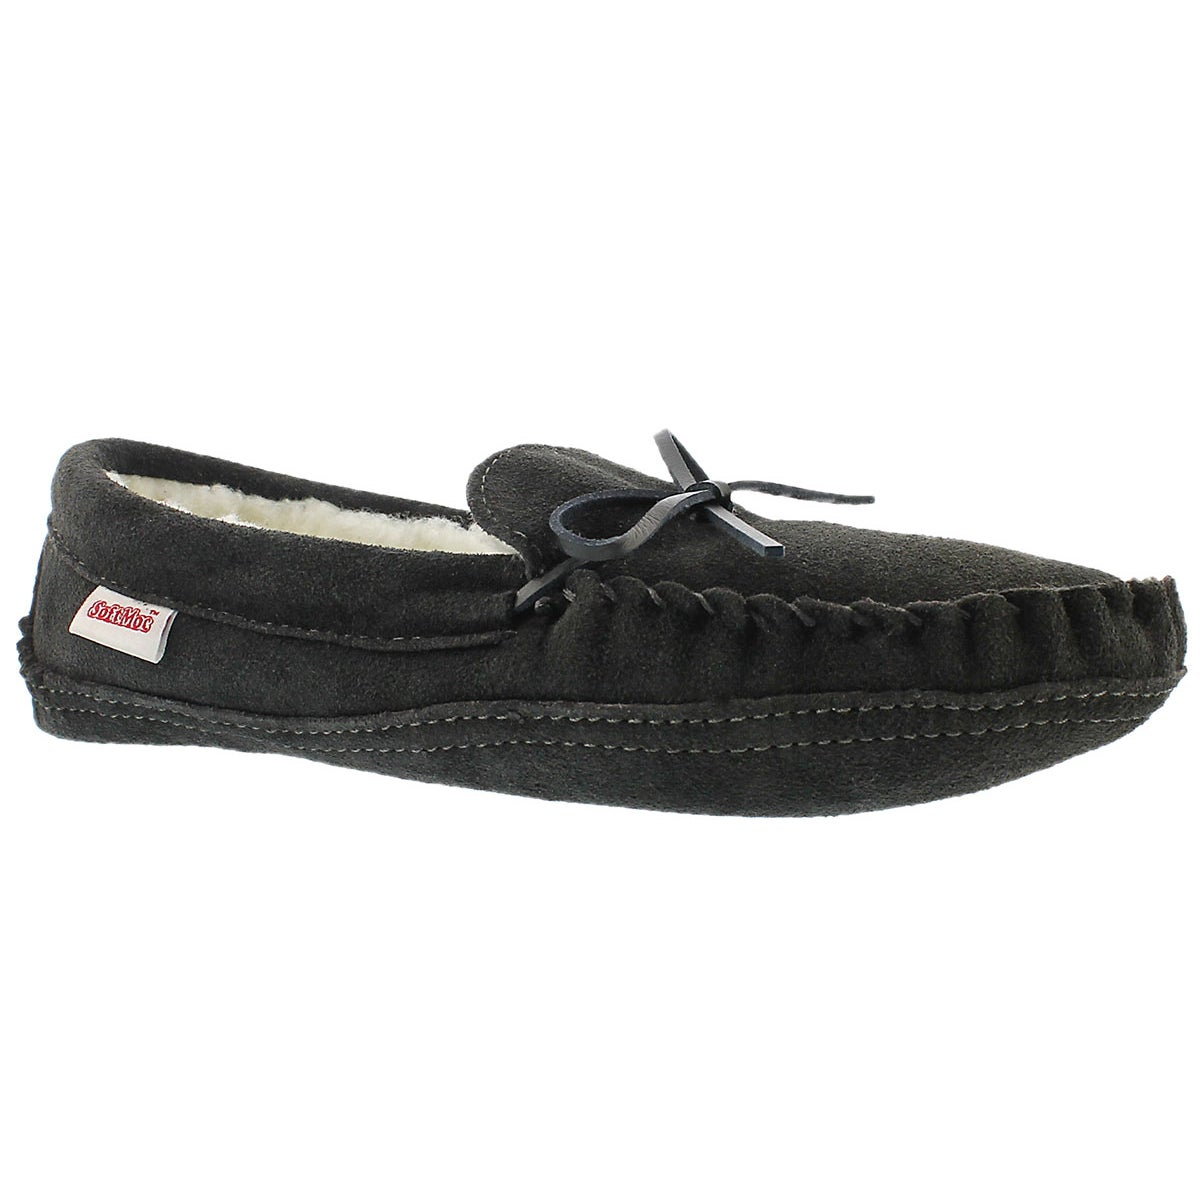 Mns grey suede fur lined moccasin